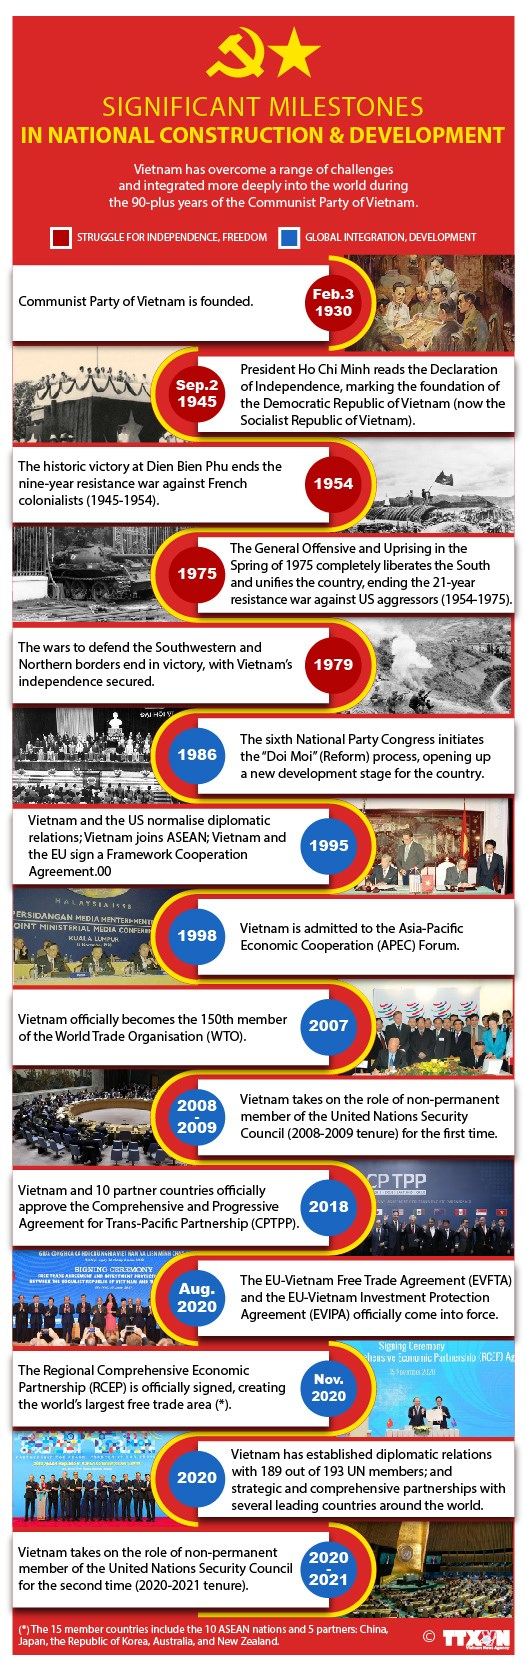 Significant milestones in national construction and development hinh anh 1